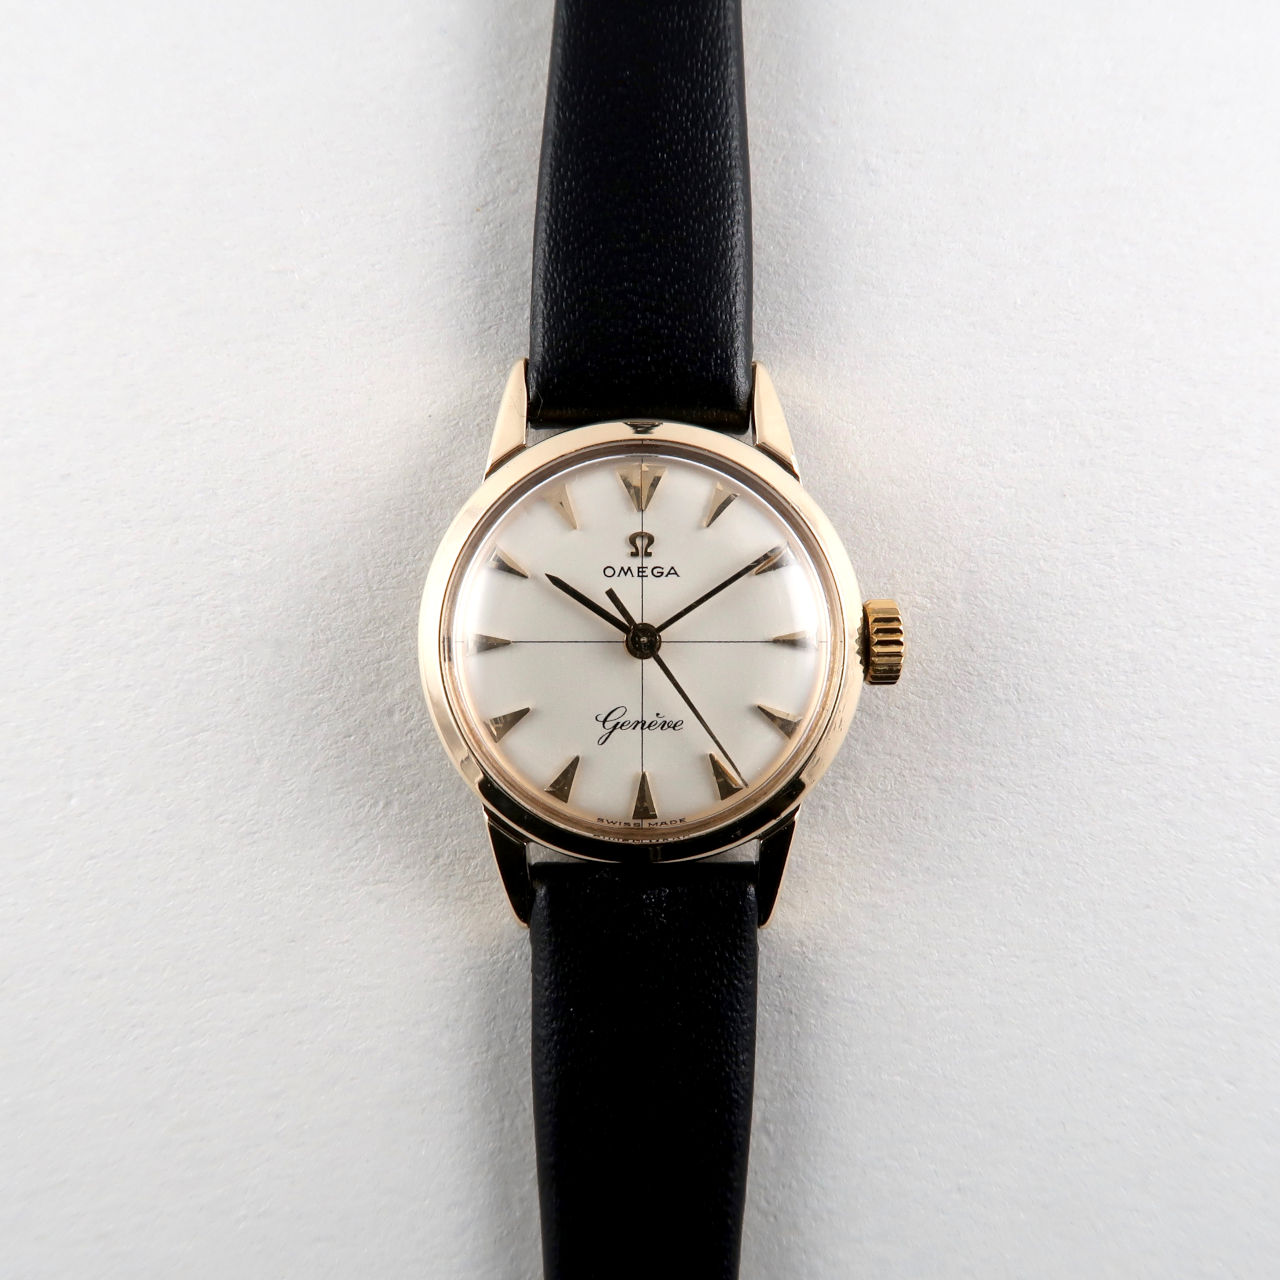 Omega Genève Ref. 531.5001 hallmarked 1962 | 9ct gold lady's vintage wristwatch